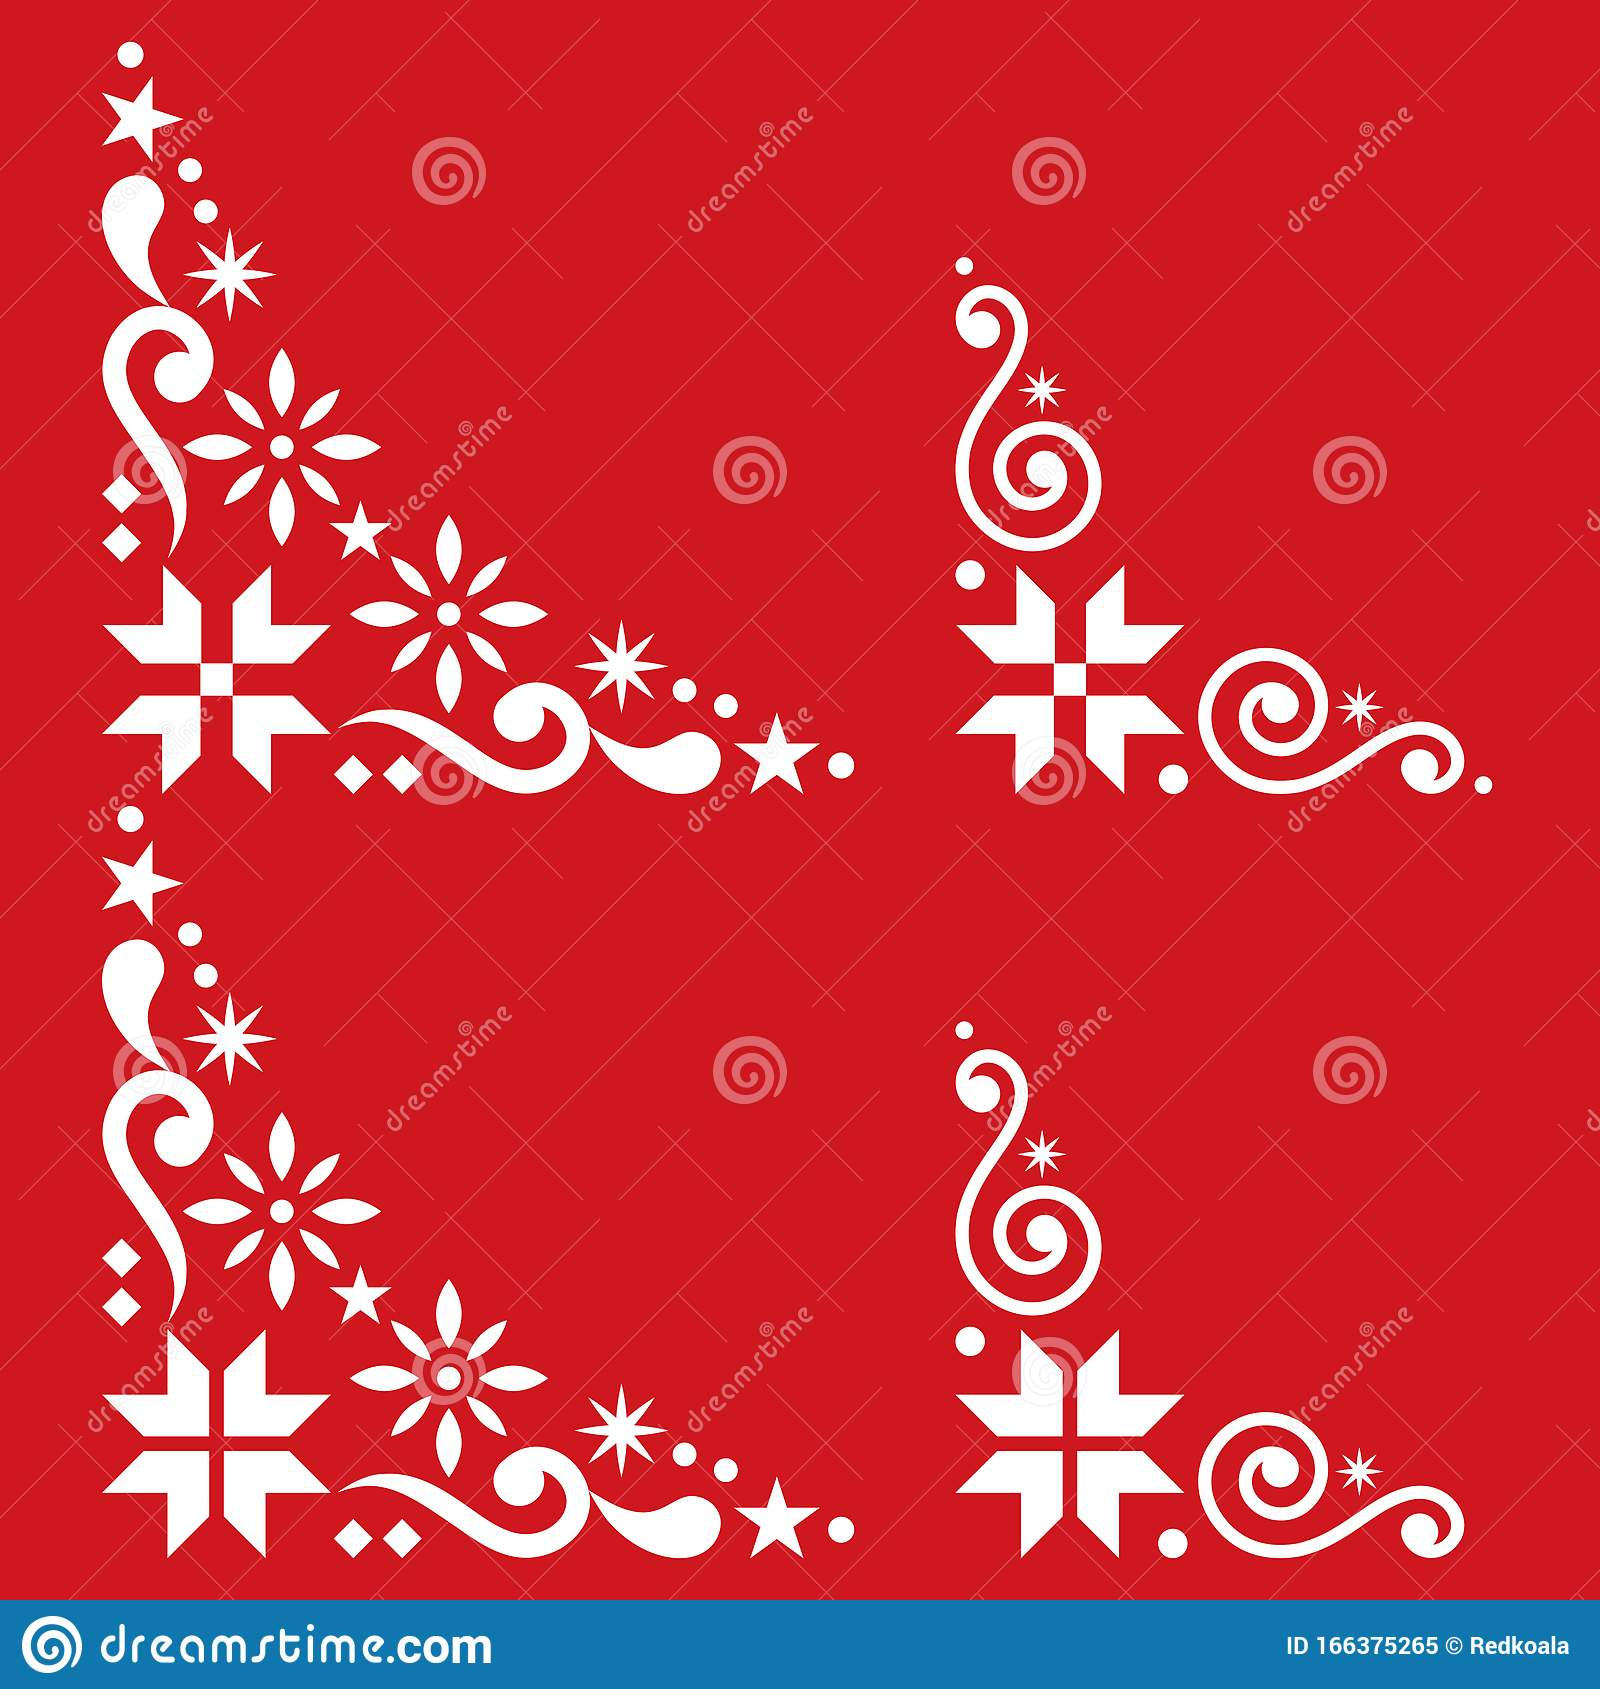 40+ Christmas Vector Design Elements SVG